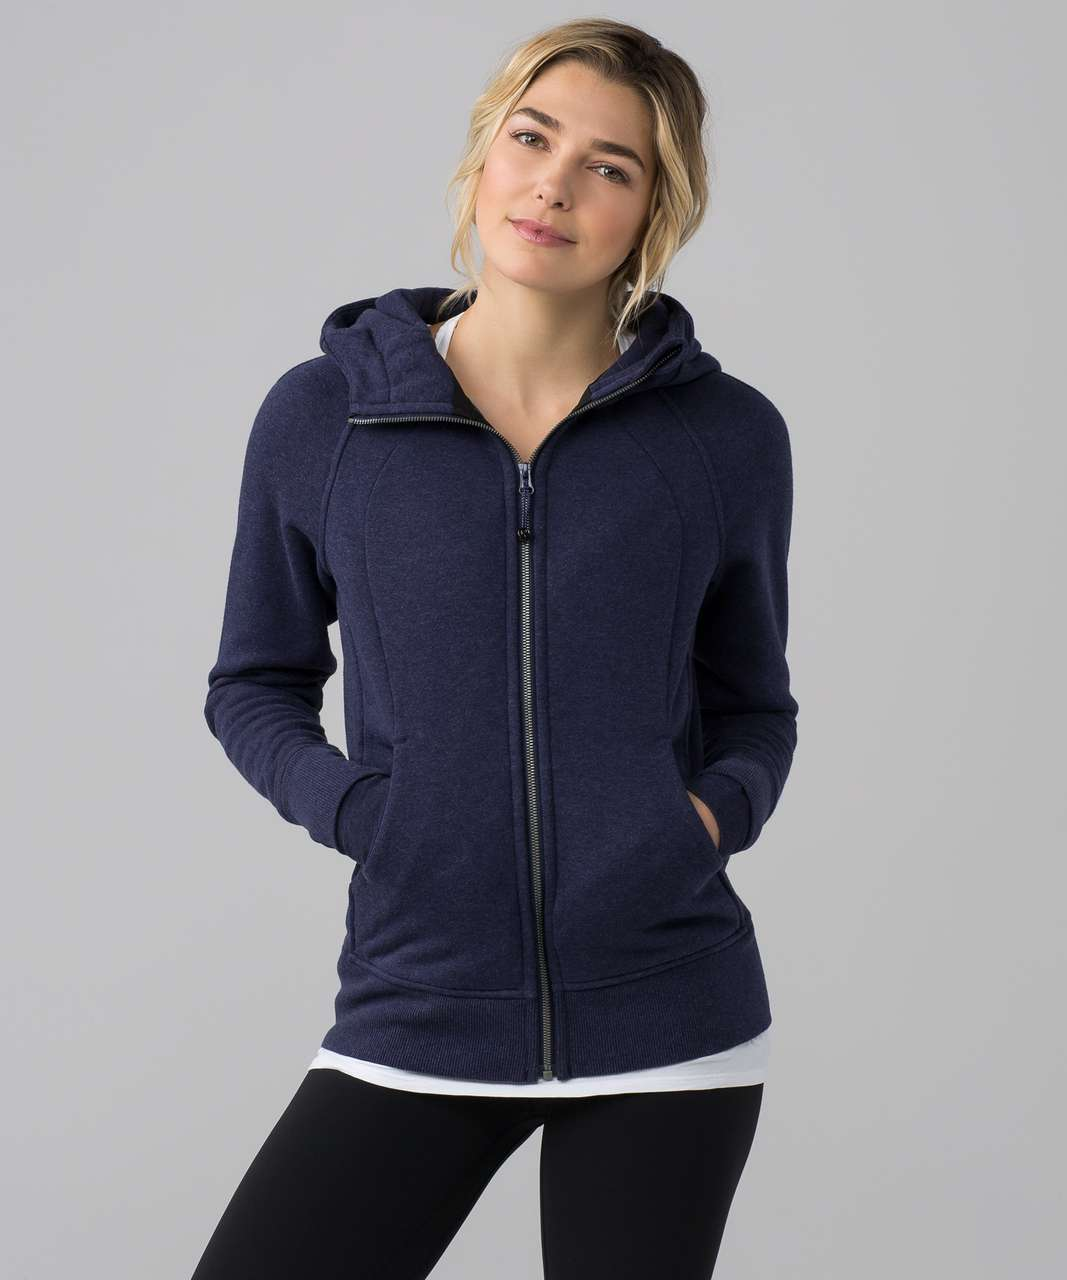 Lululemon Scuba Hoodie III (Storage) - Heathered Deep Indigo